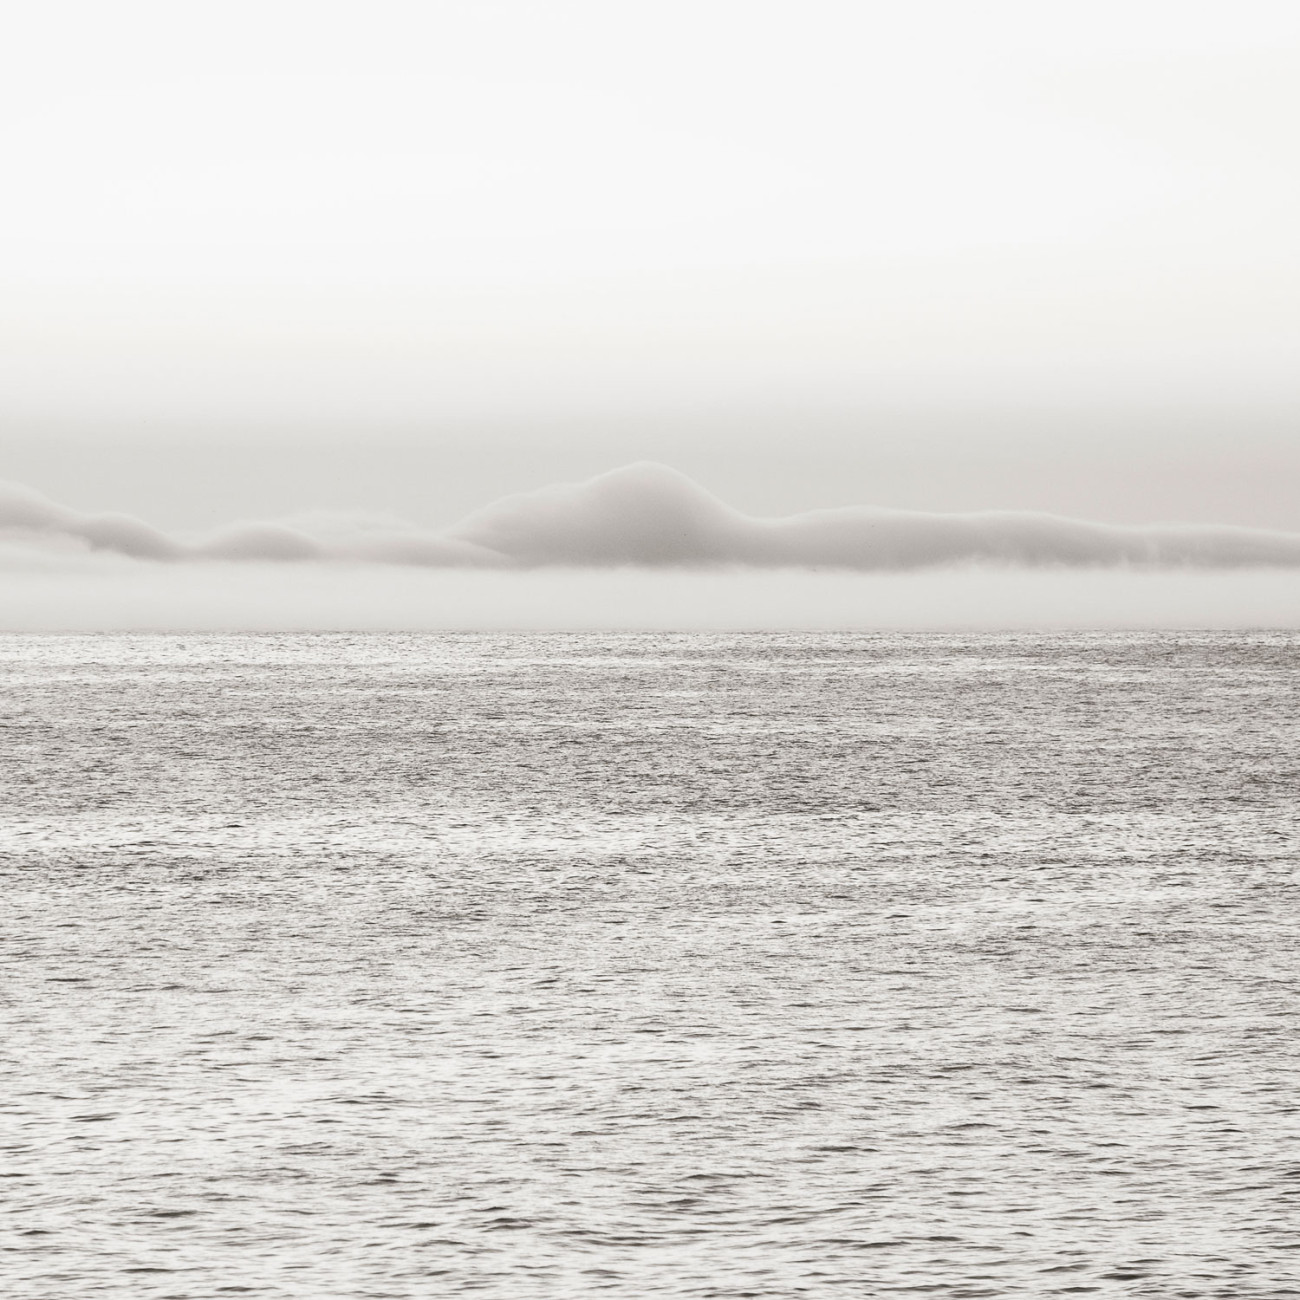 Lifting morning fog, Mediterranean Sea, Spain, 2014